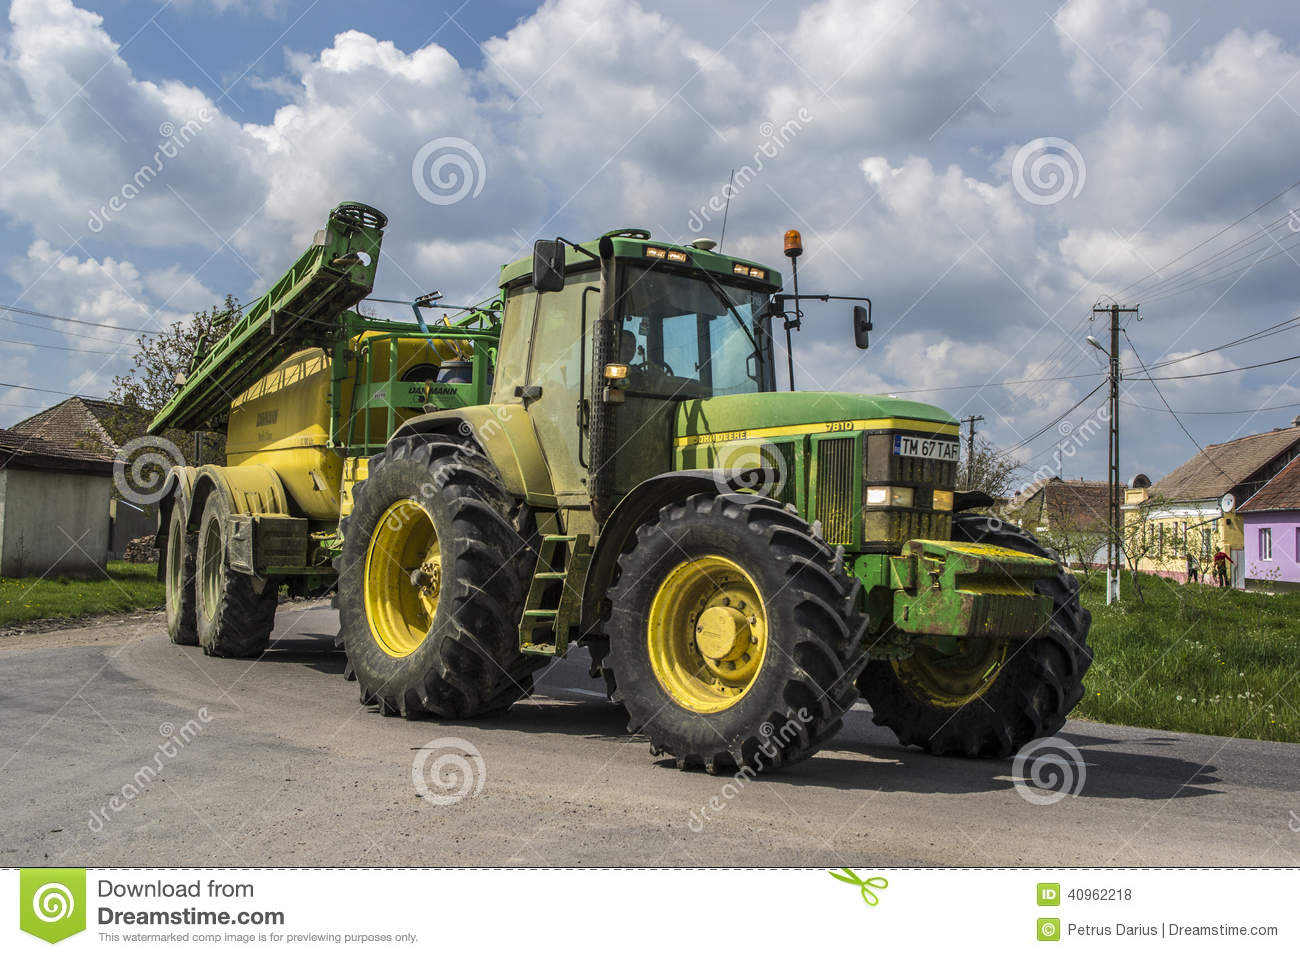 john deere traktor p v gen redaktionell arkivfoto bild. Black Bedroom Furniture Sets. Home Design Ideas